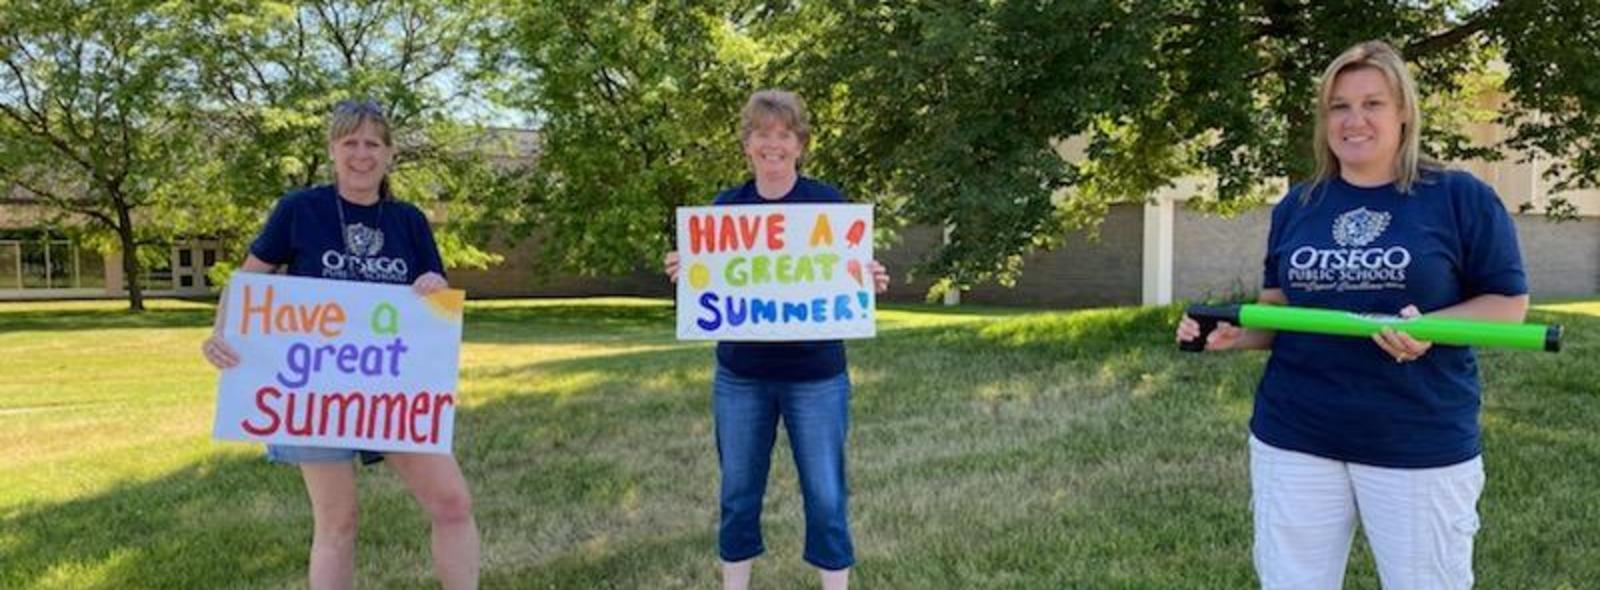 2nd grade teachers hold up signs saying have a great summer